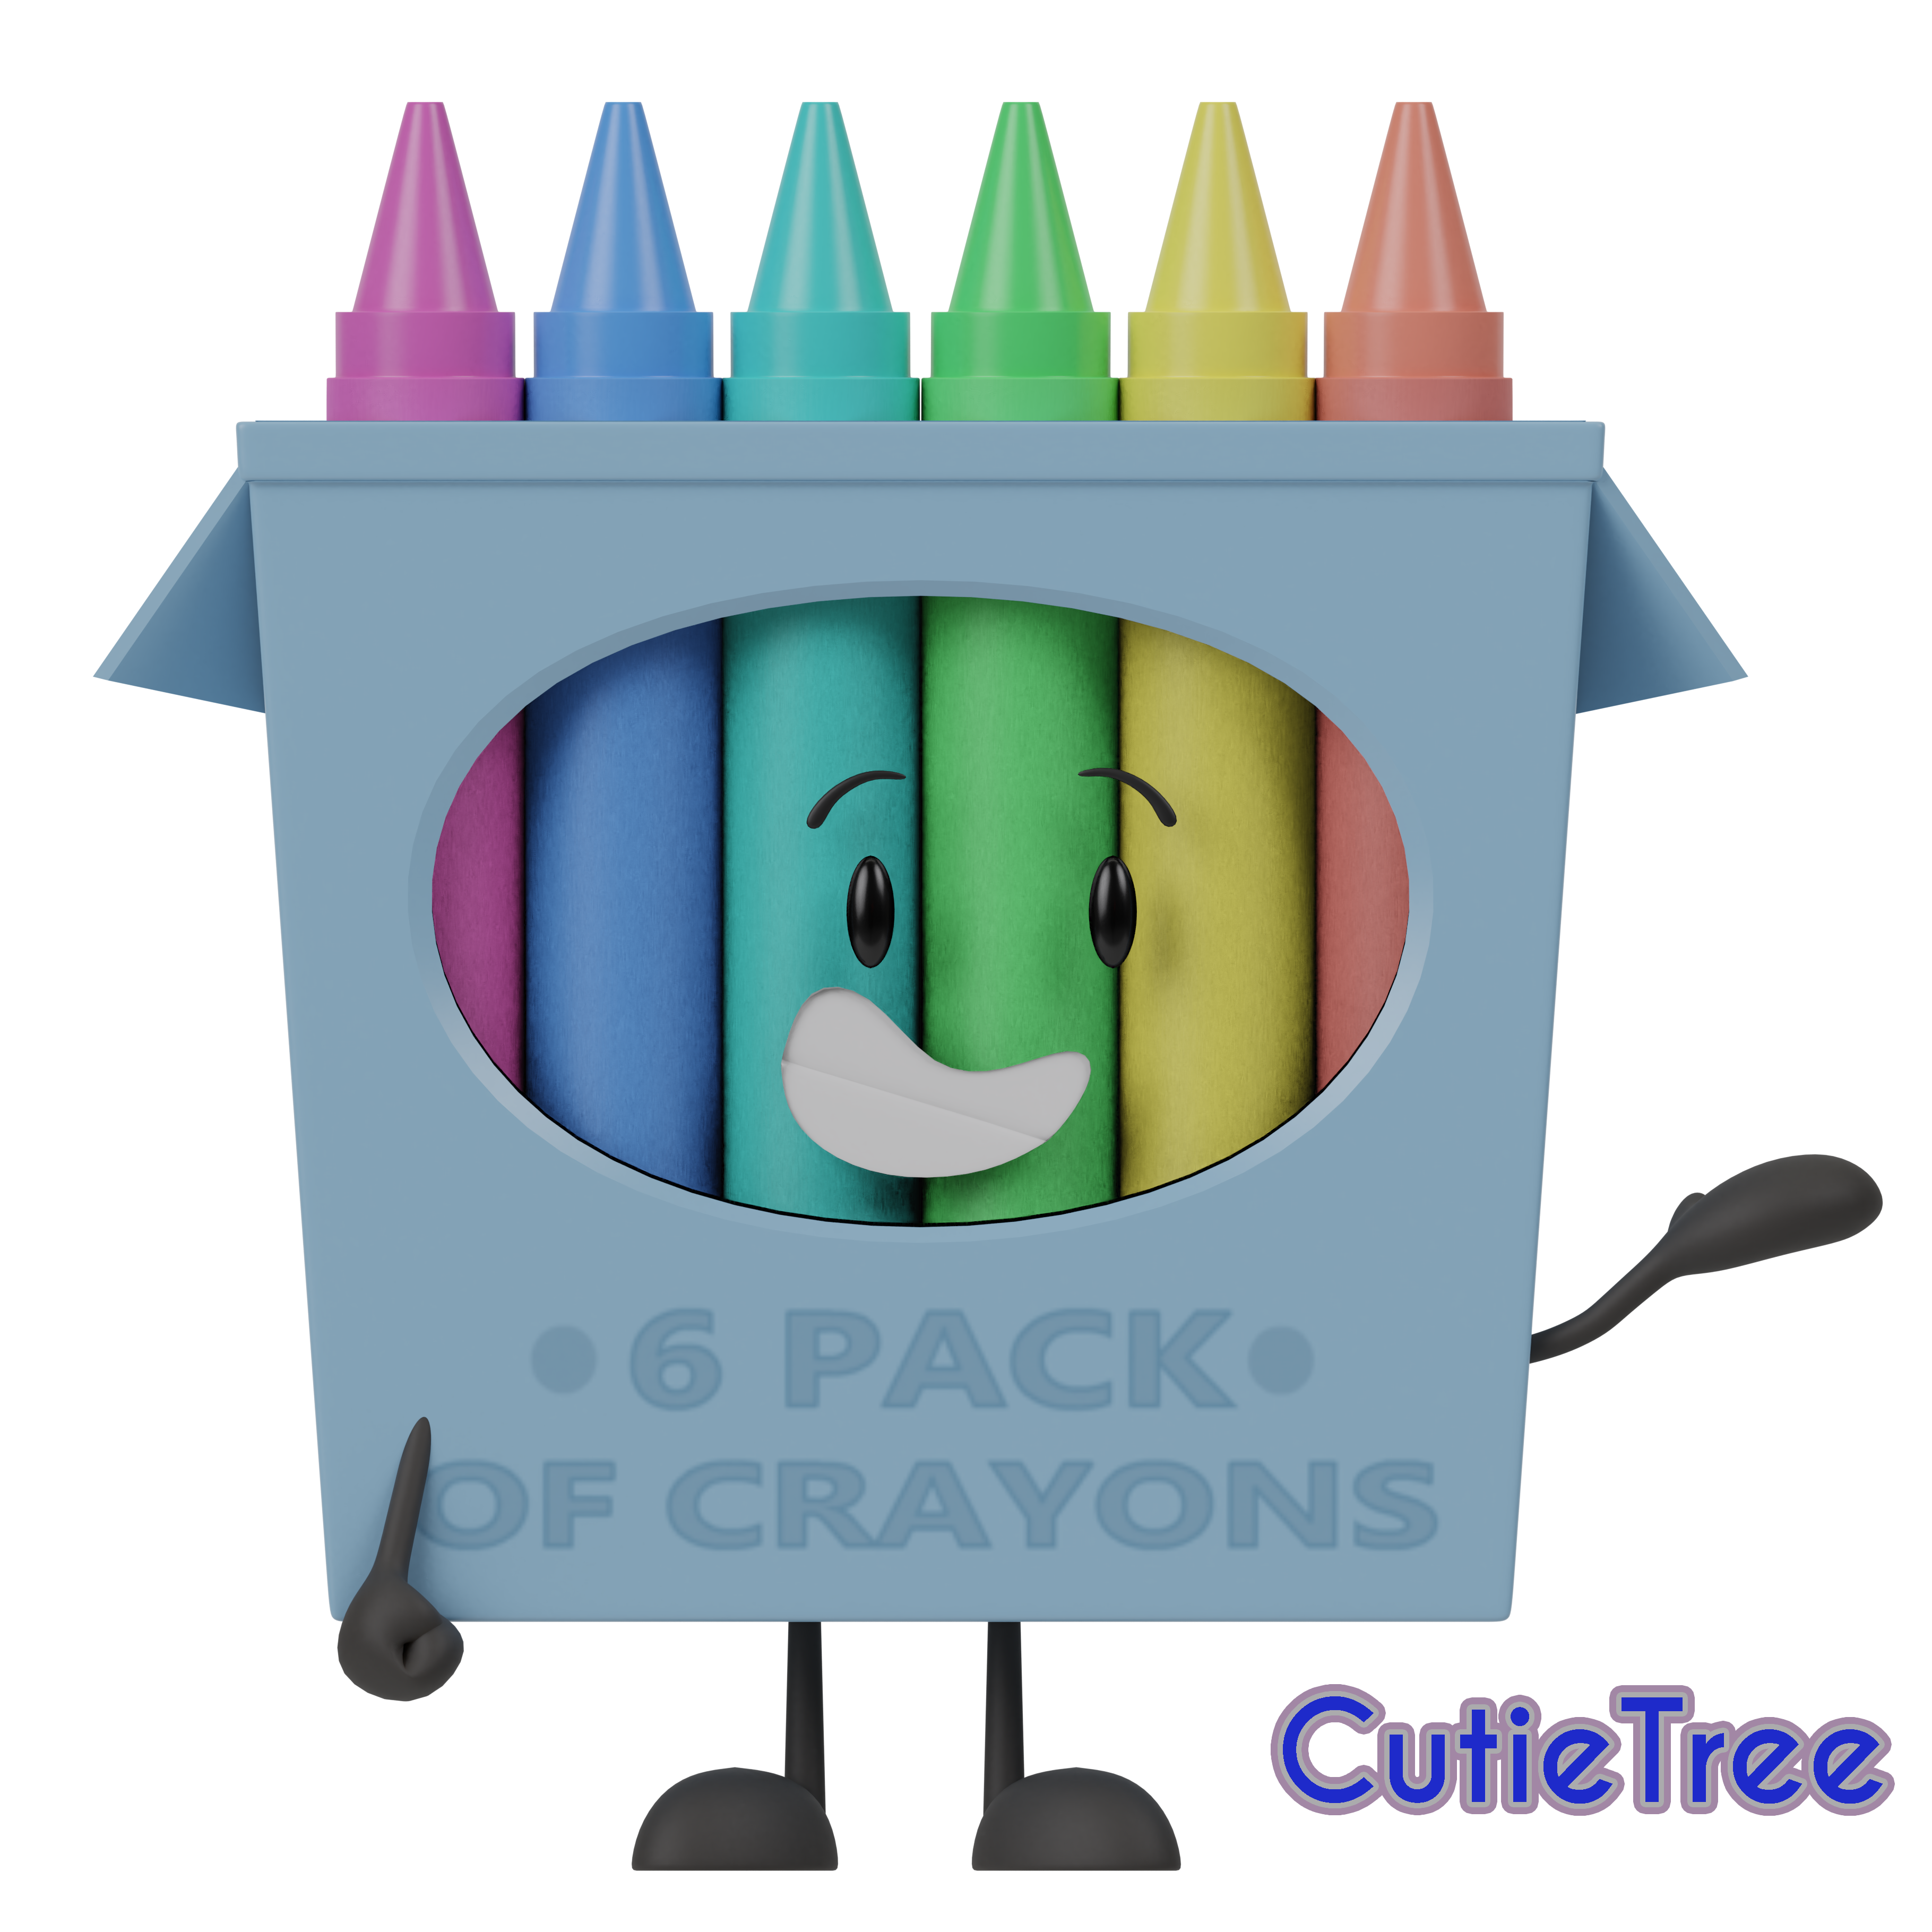 Crayons clipart box 16, Crayons box 16 Transparent FREE for.